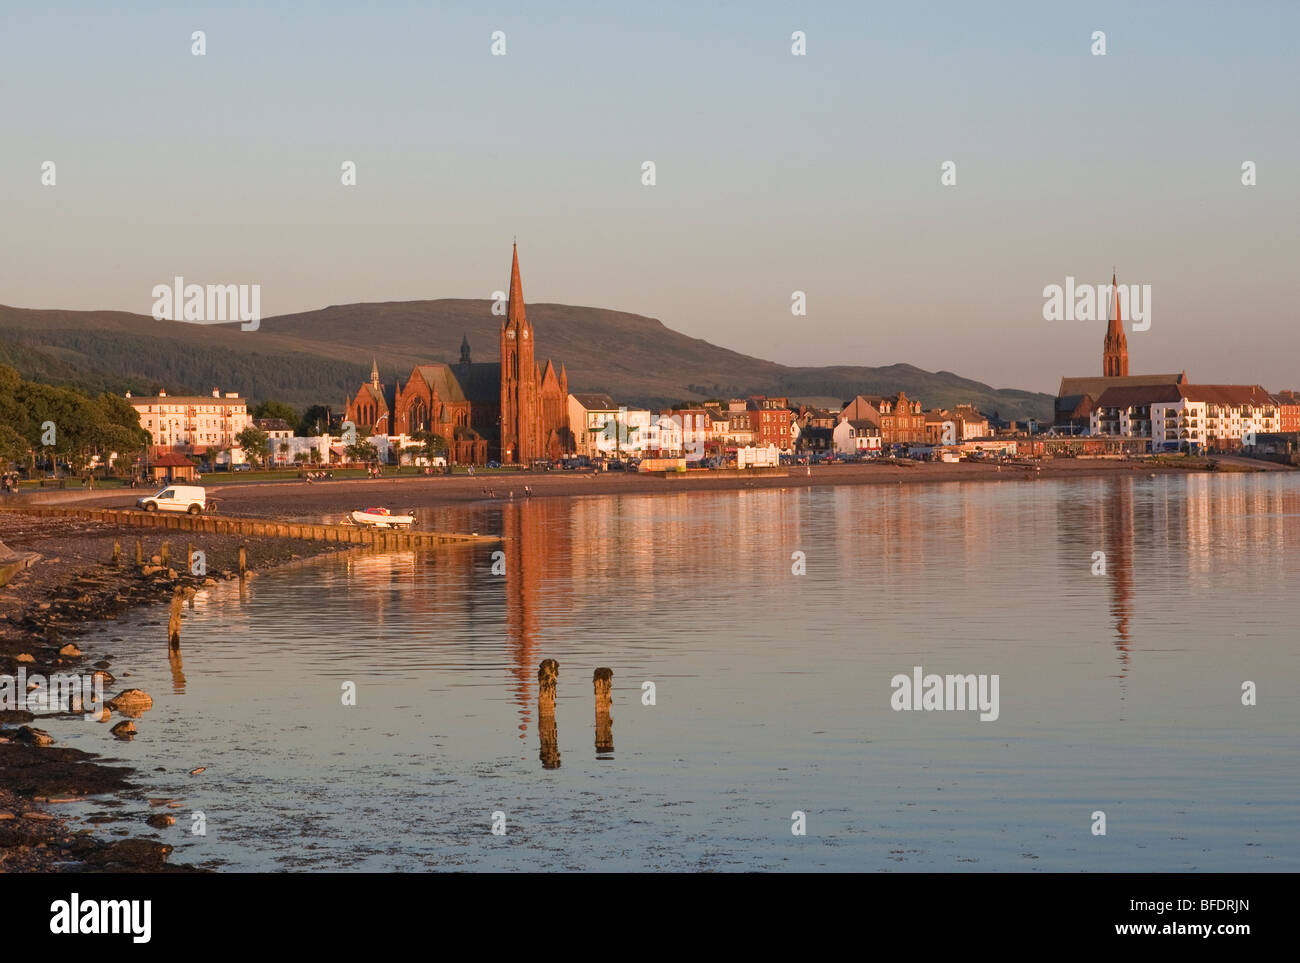 Evening view with warm light over the promonade at Largs - Stock Image